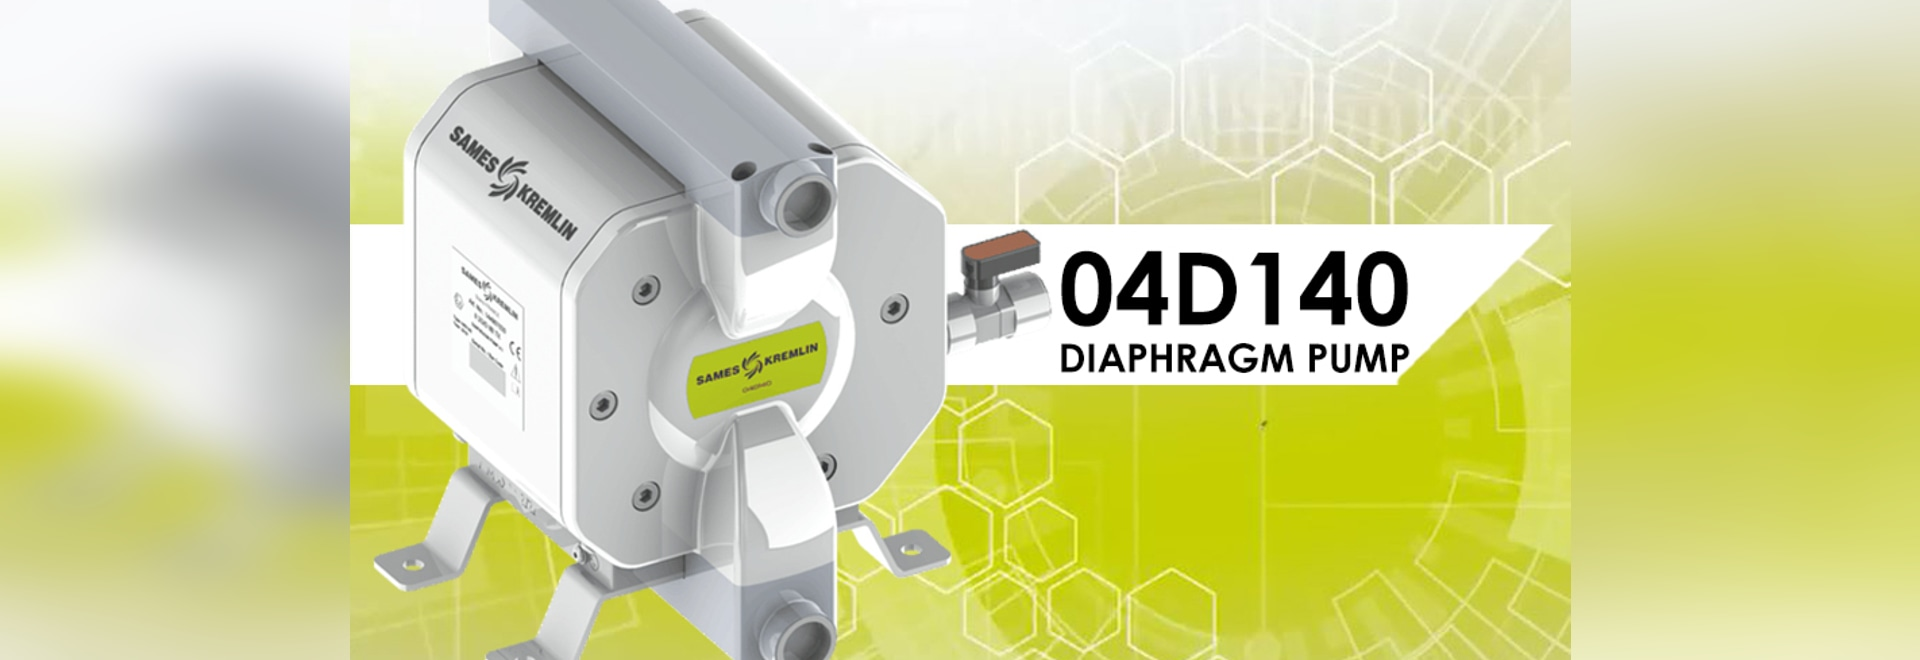 04D140 DIAPHRAGM PUMP